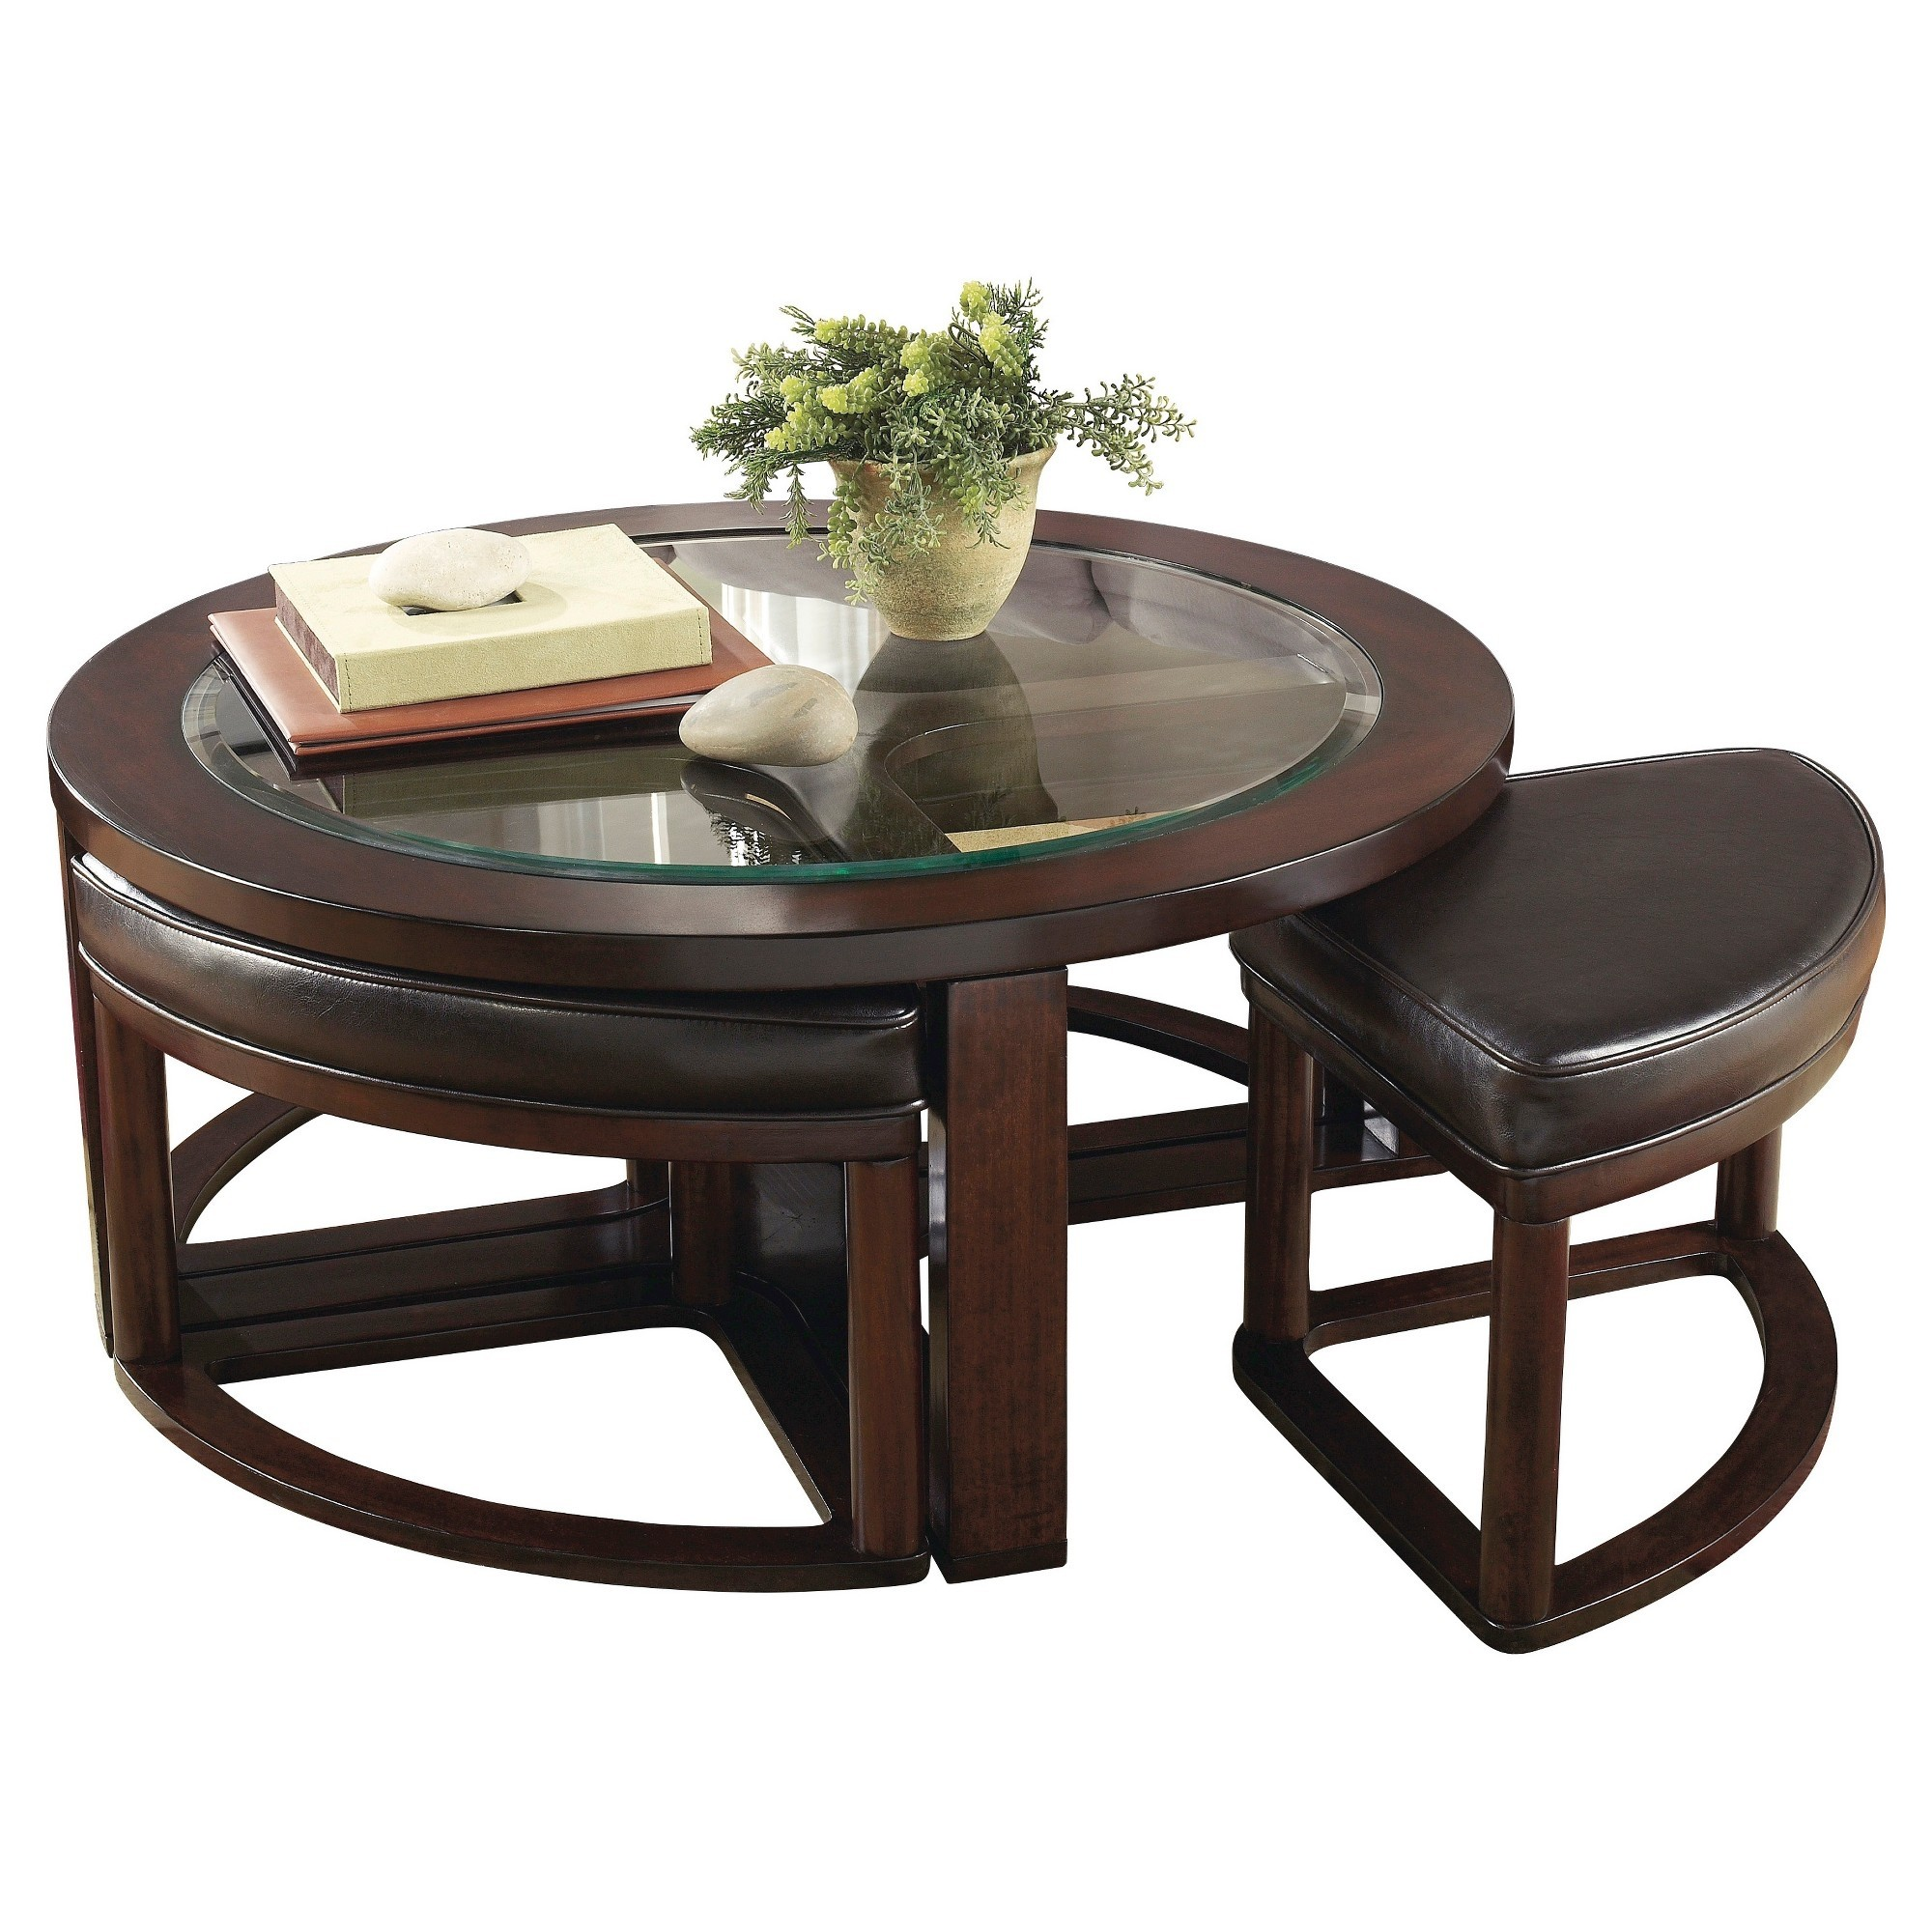 Machias 5 Piece Coffee Table U0026 Stool Set